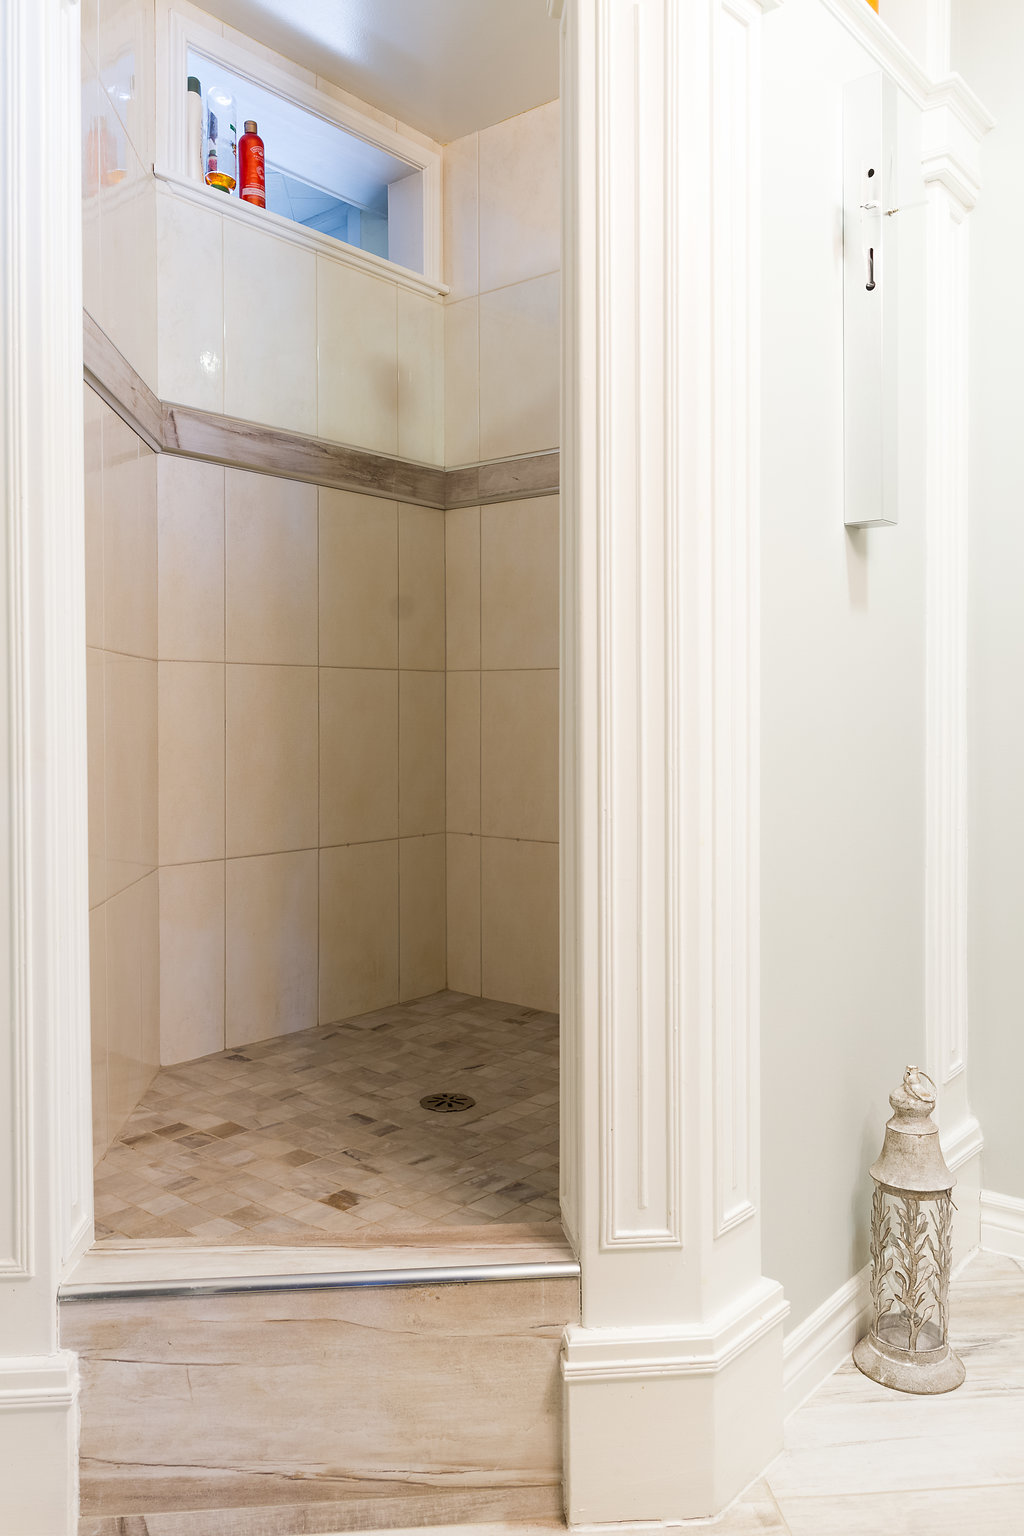 Step-Up Shower Stall